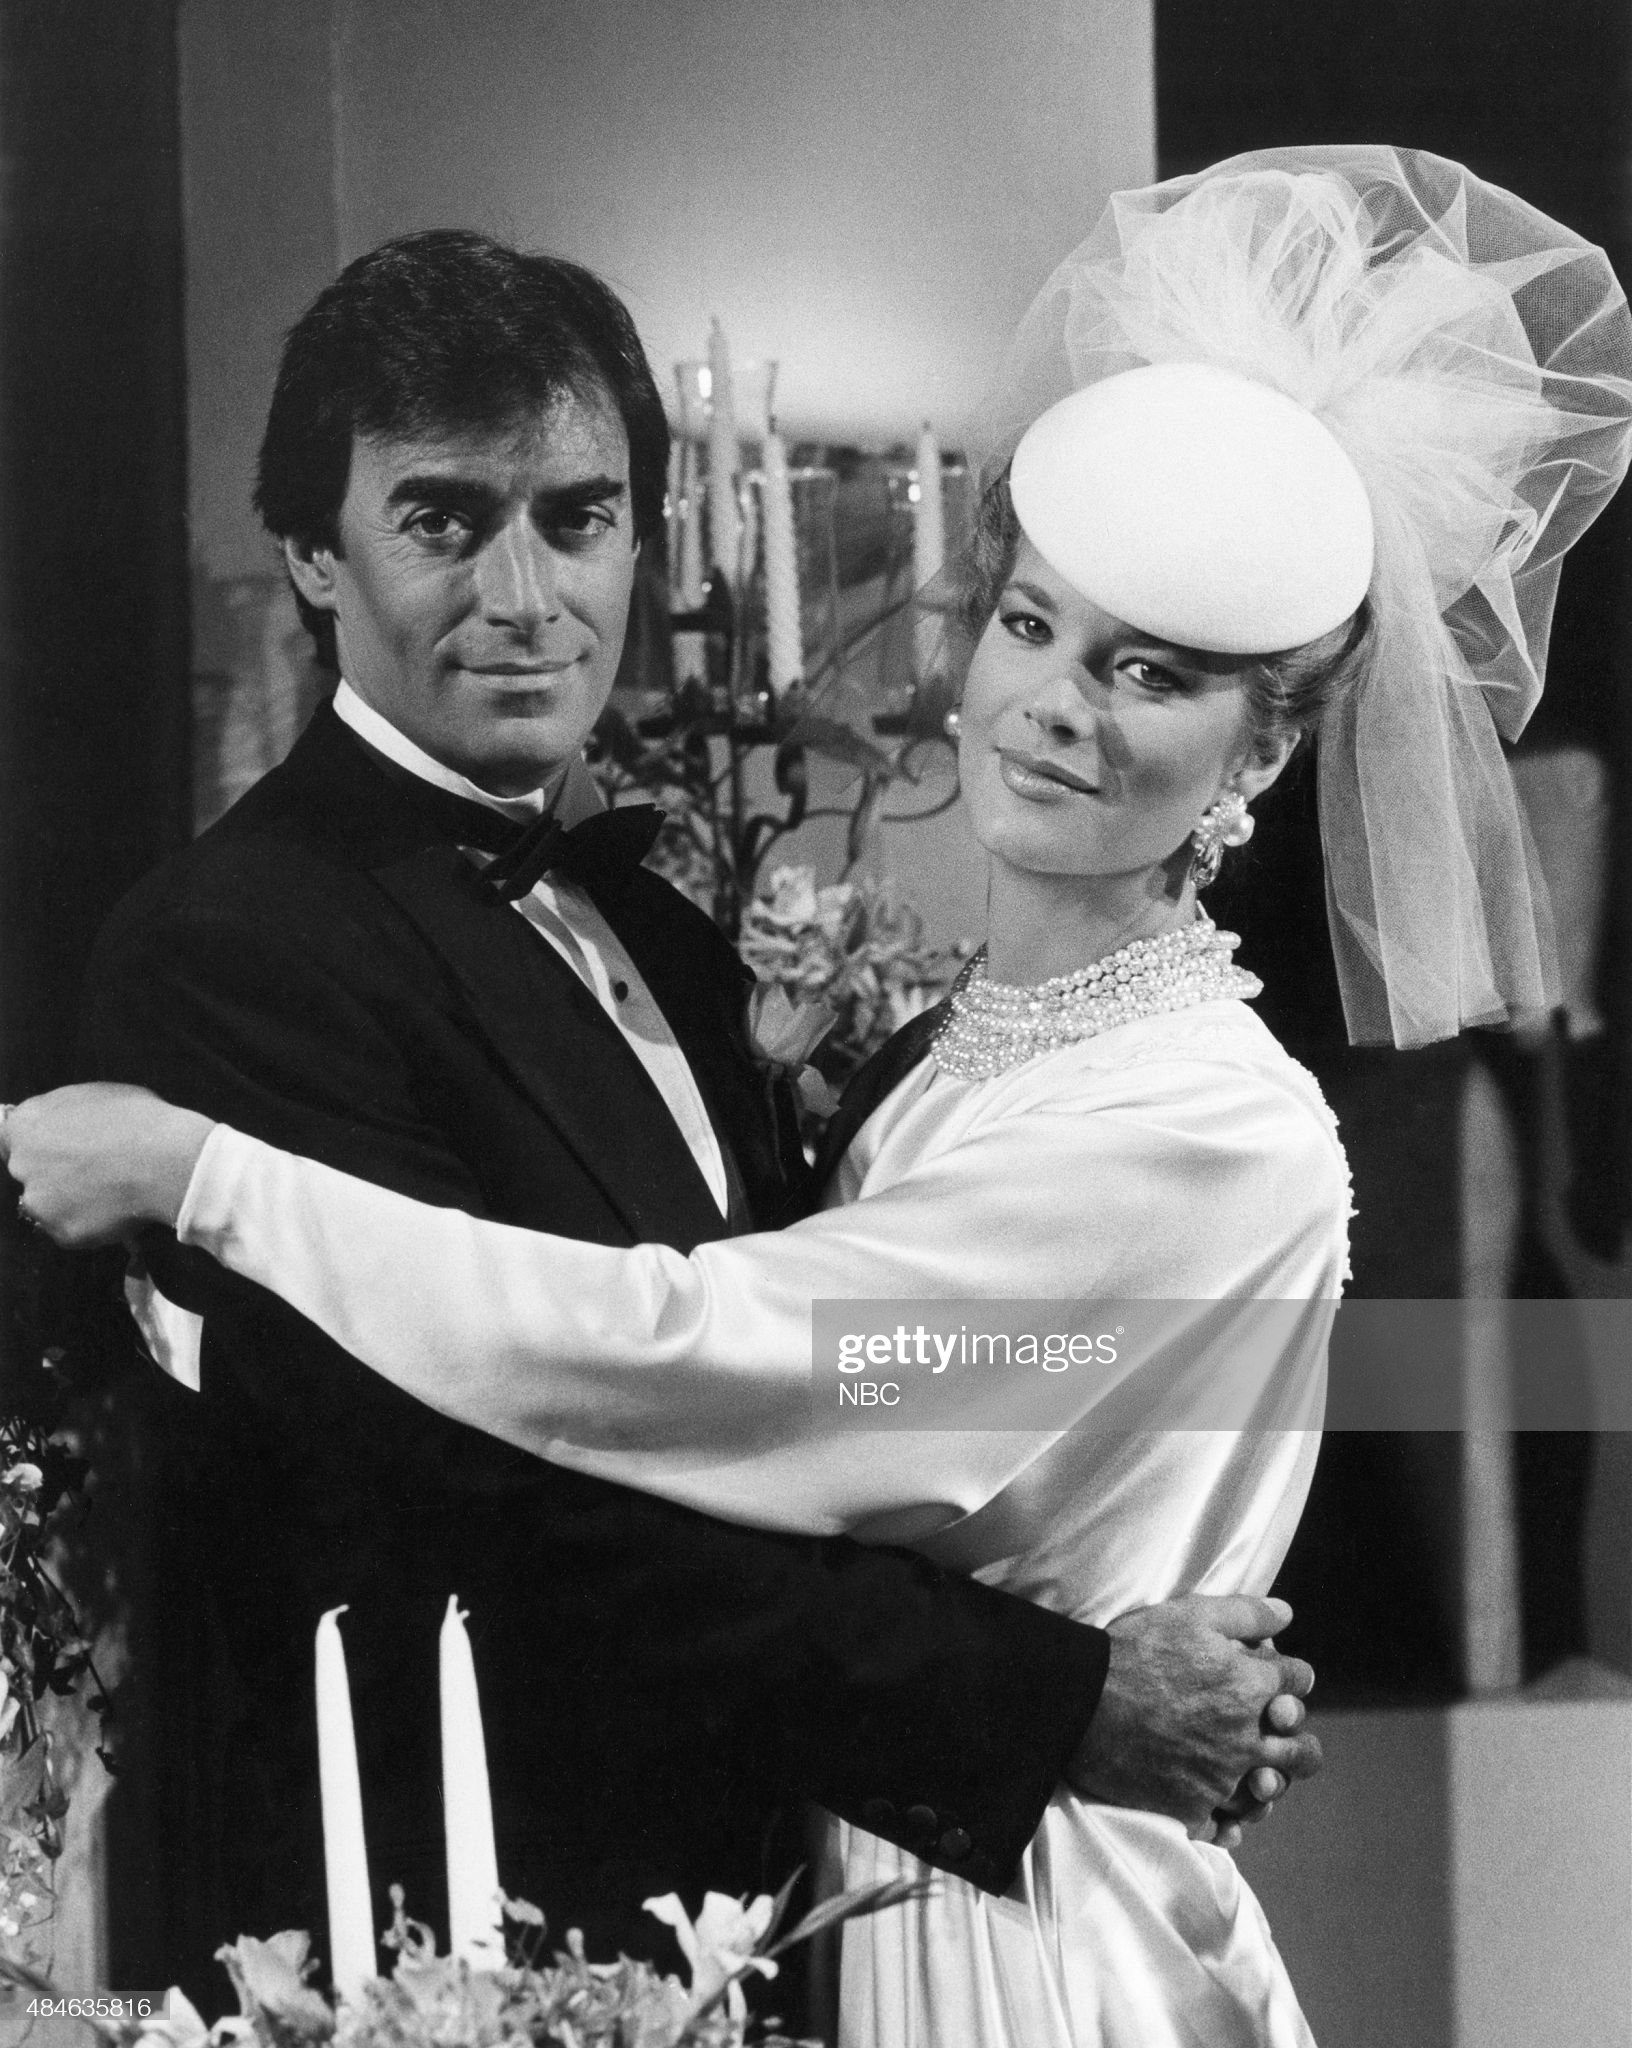 tony-dimera-anna-brady-wedding-pictured-thaao-penghlis-as-tony-dimera-picture-id484635816